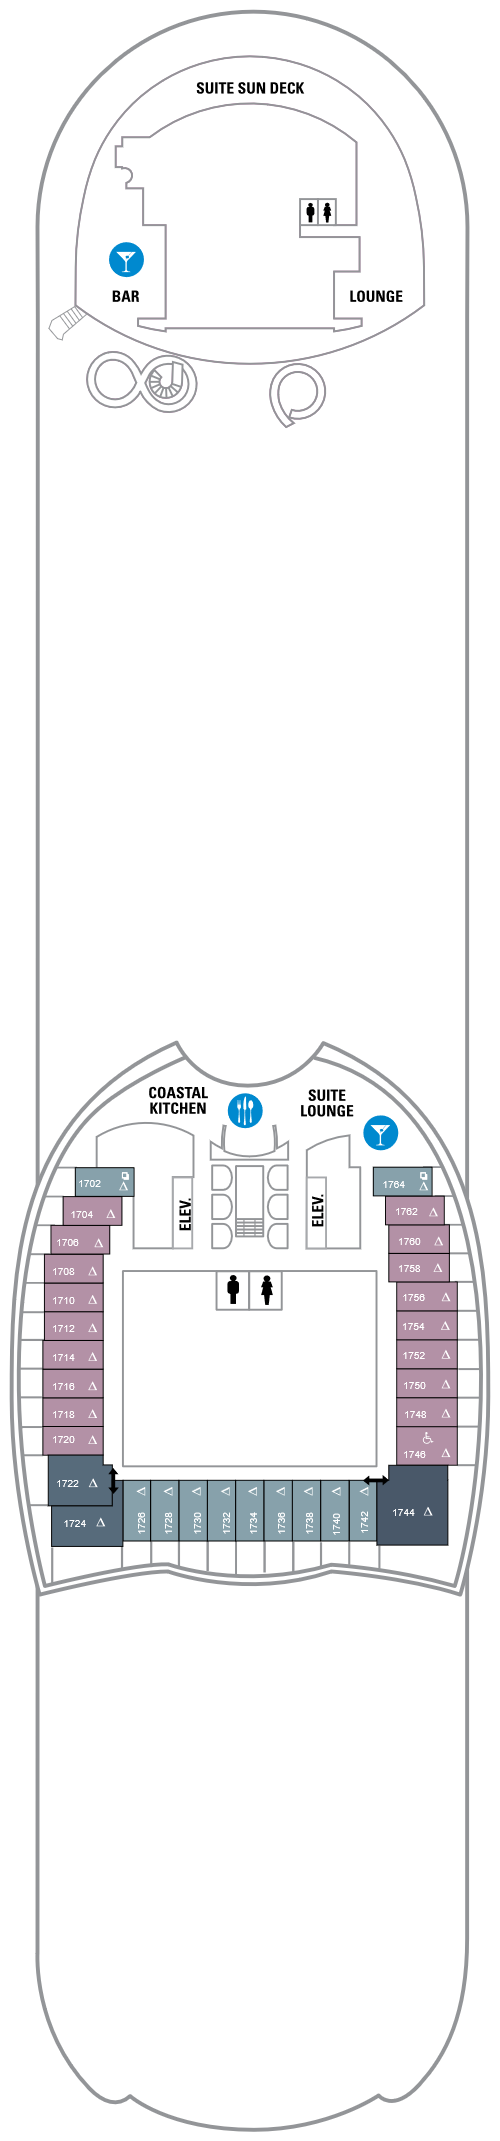 Harmony of the Seas Deck 17 layout